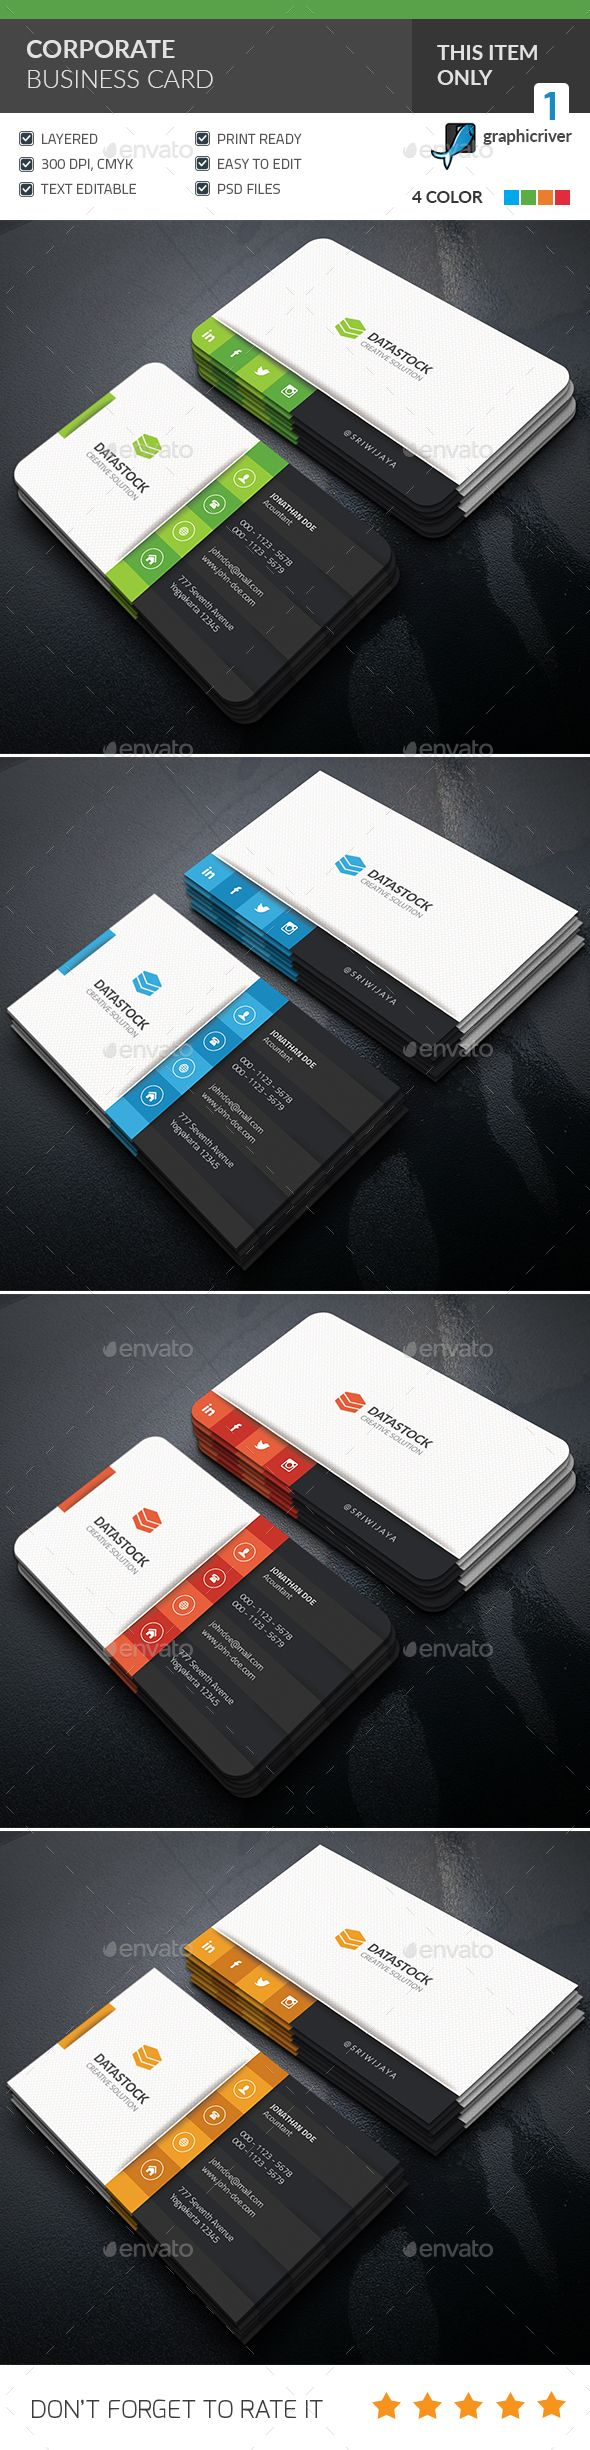 174 best Business Card Print Templates images on Pinterest ...